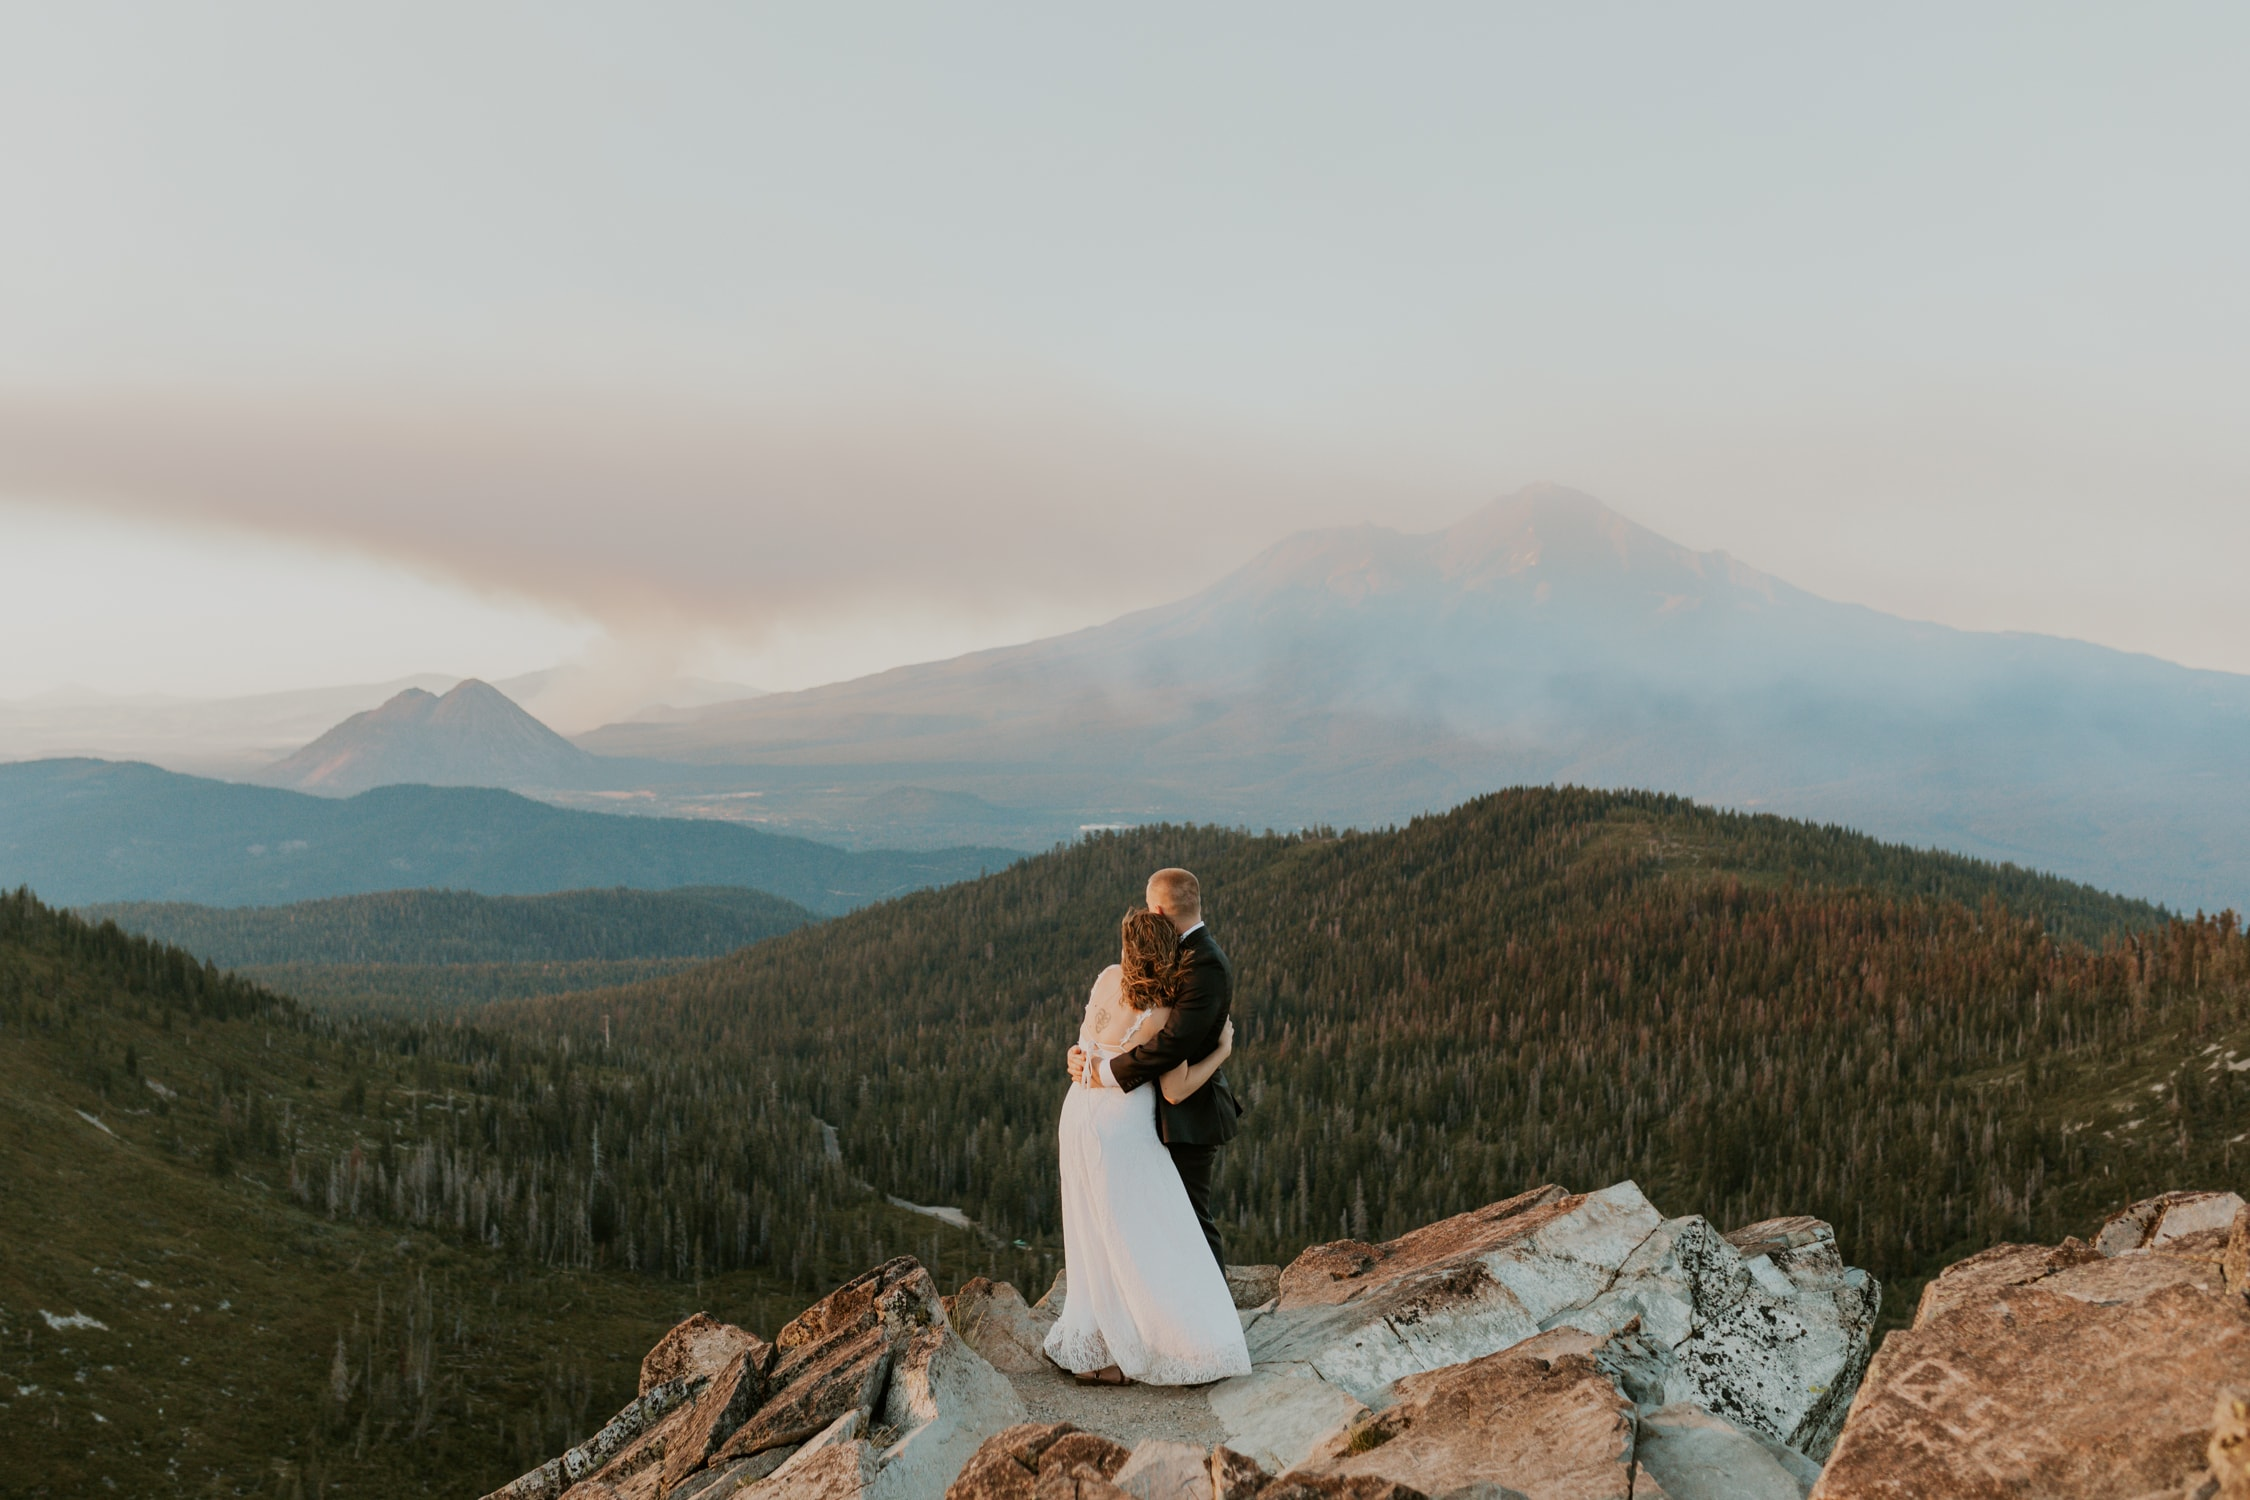 A couple hugging each other by a mountain on their elopement day.